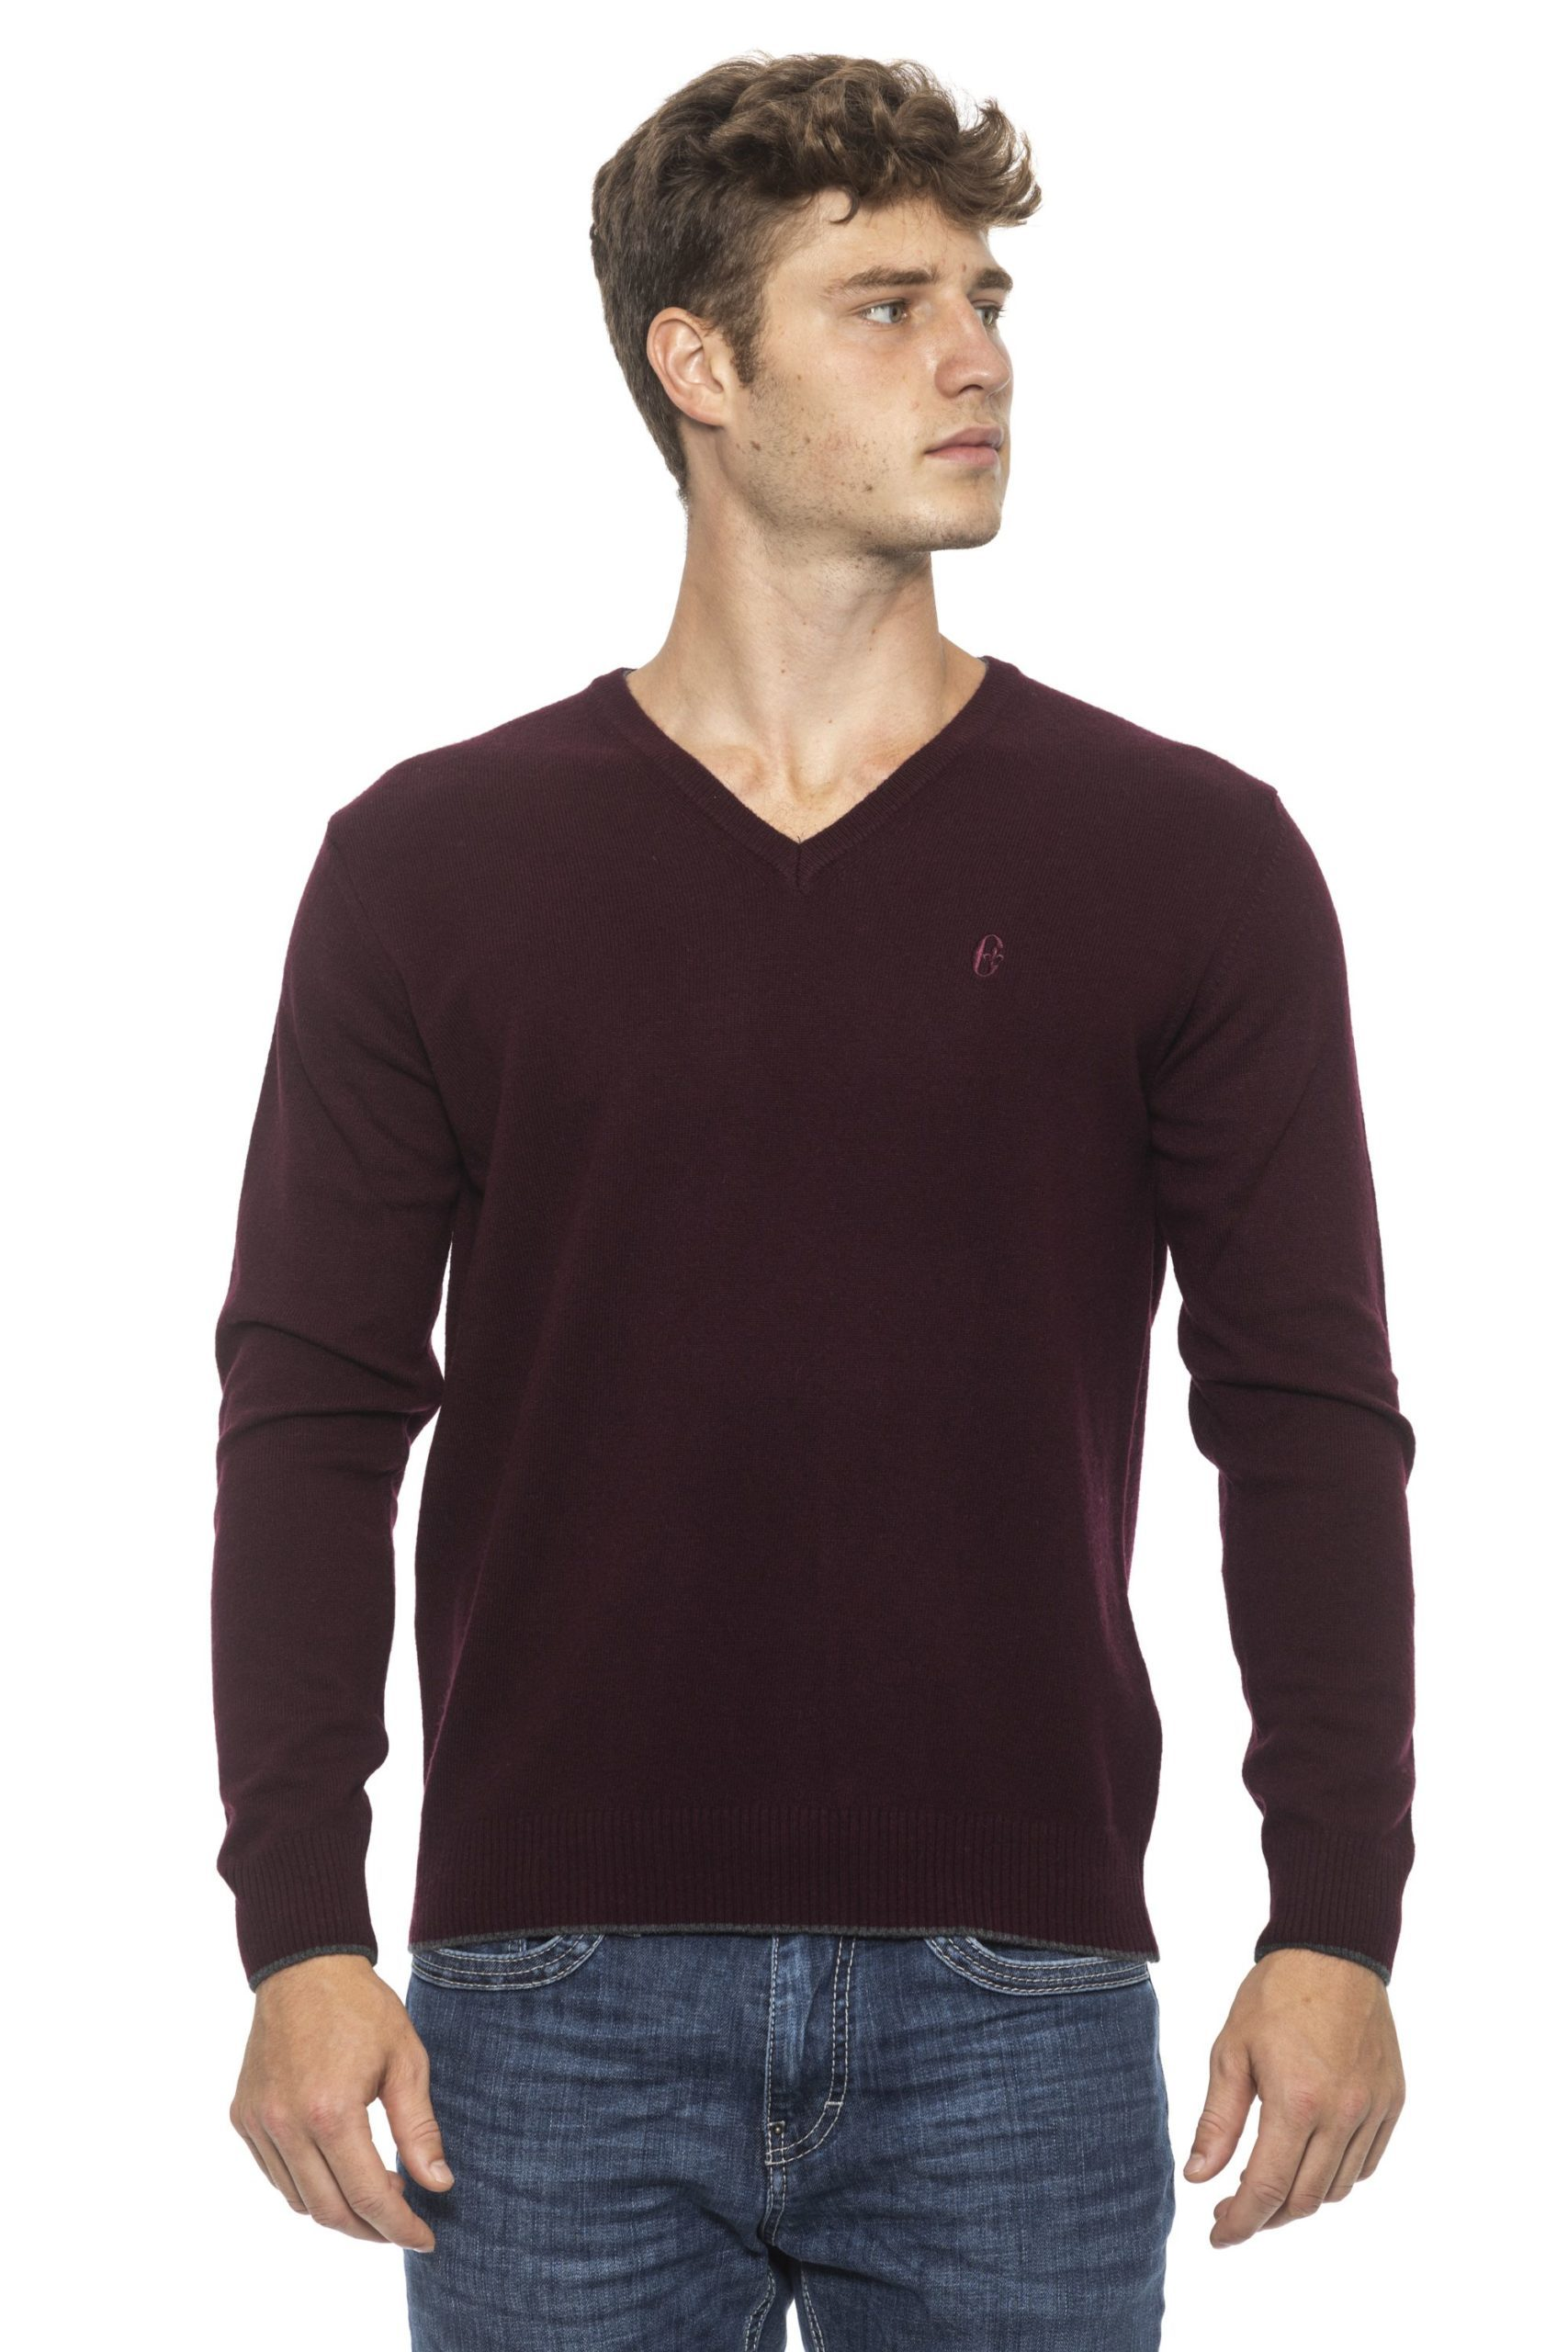 Conte of Florence Men's Sweater Burgundy CO1272816 - S